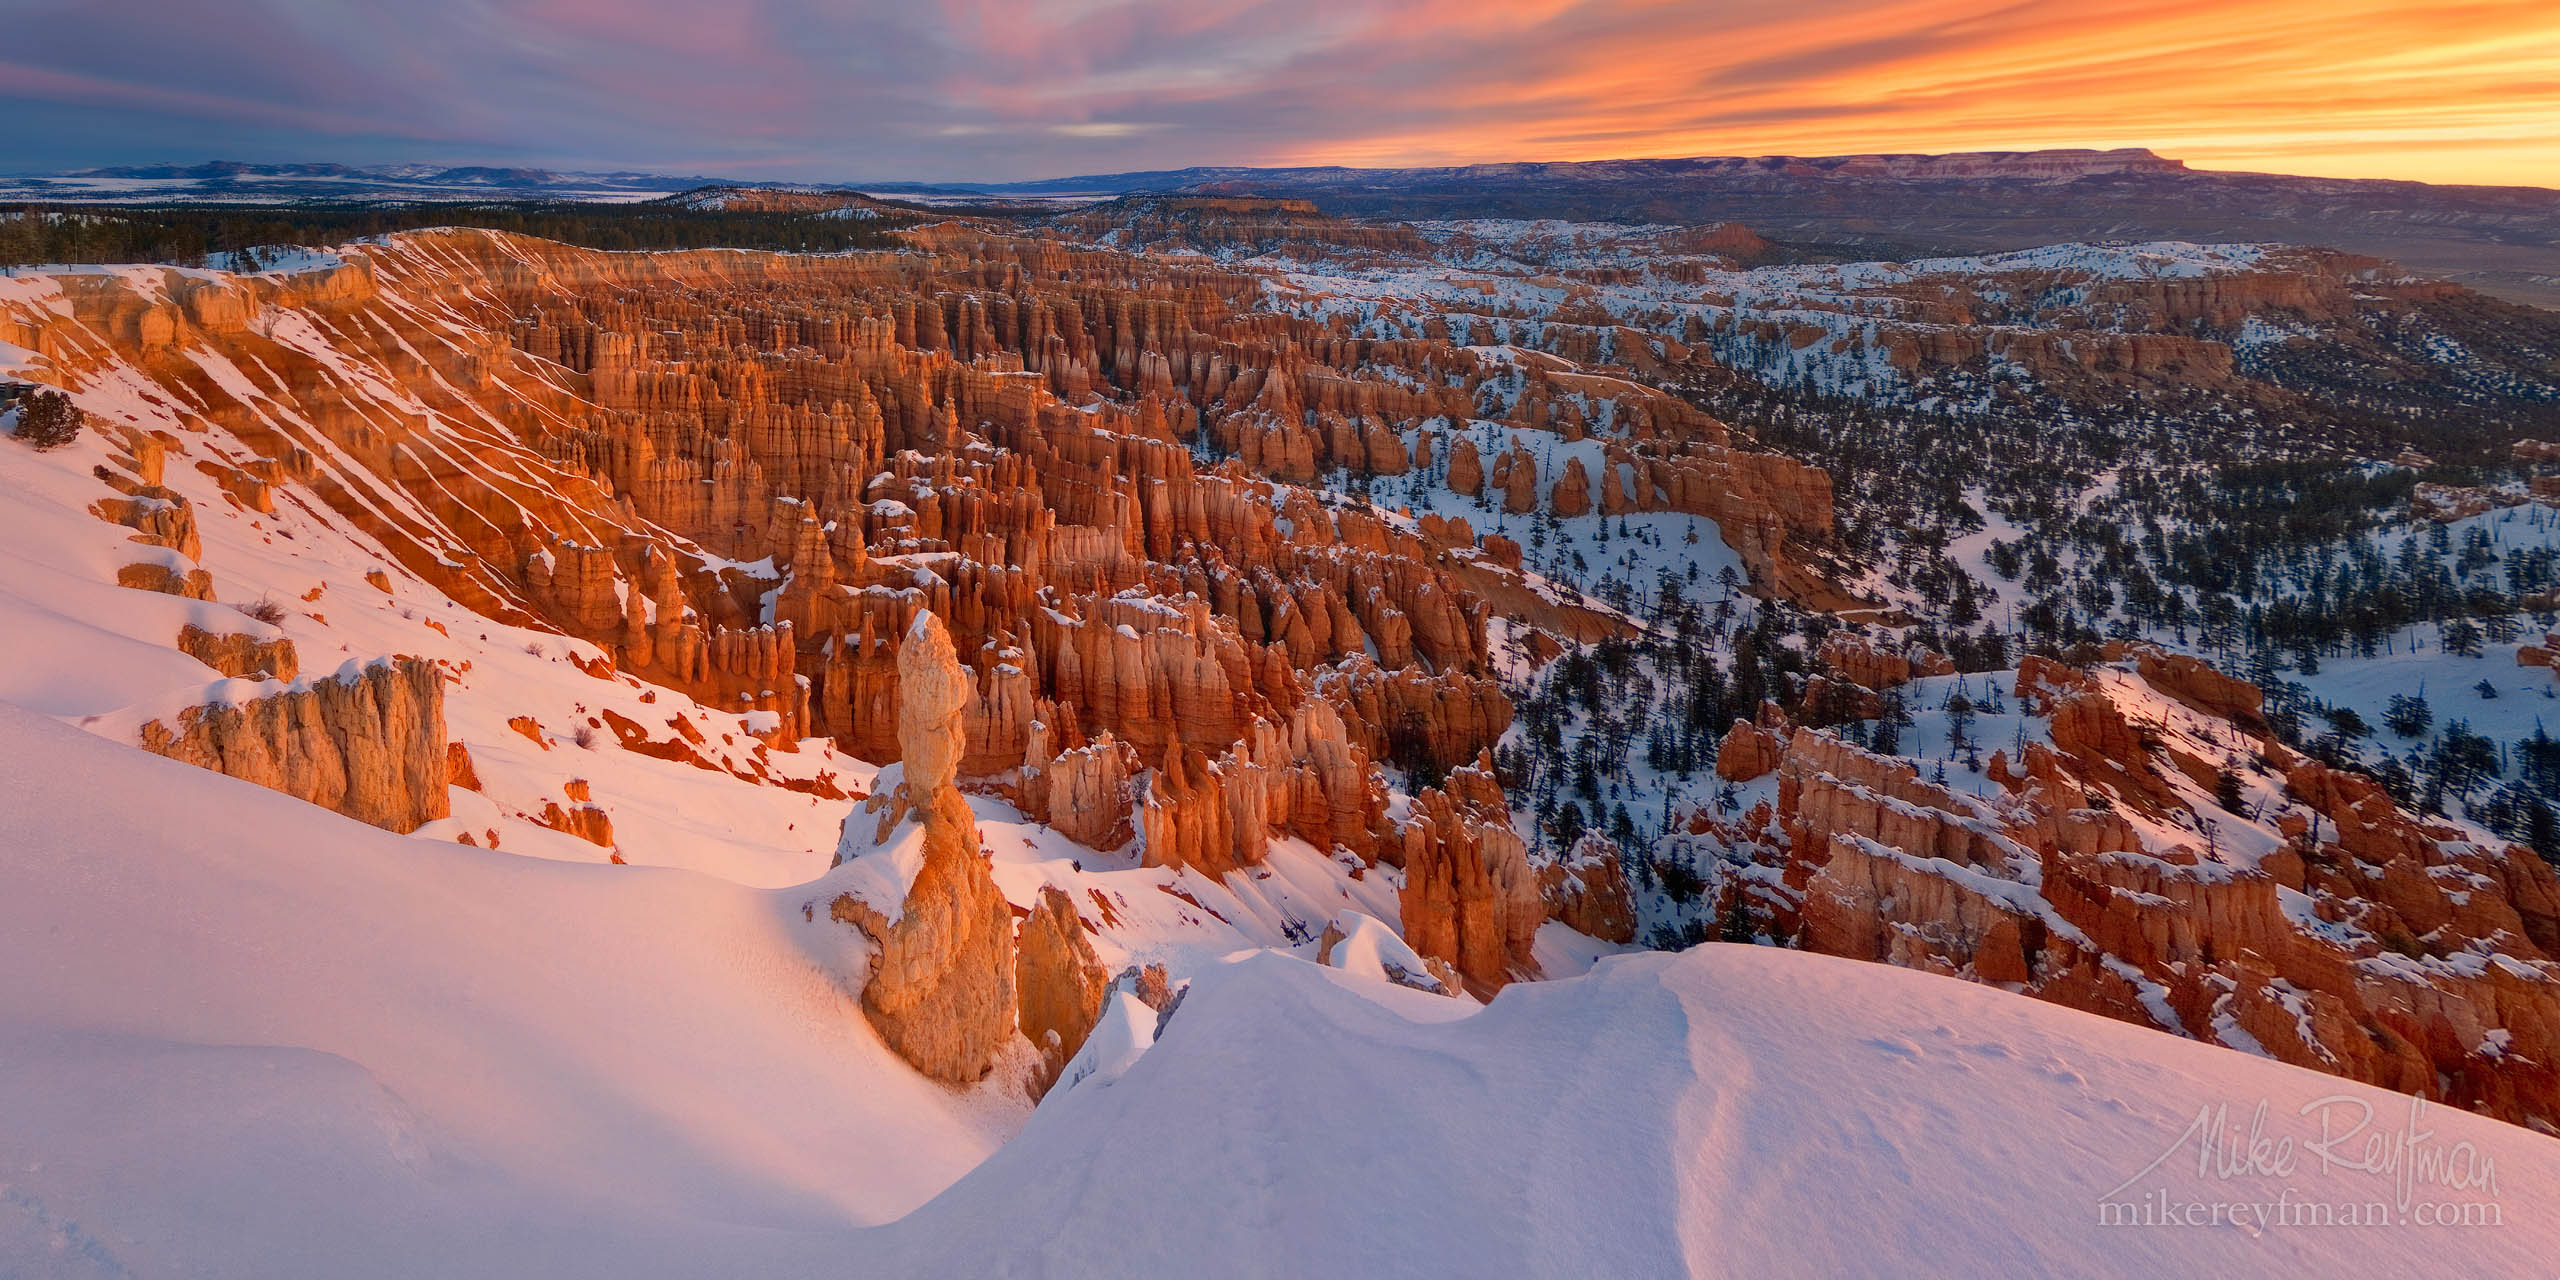 Inspiration Point at sunrise. Bryce Canyon National Park, Utah, USA. P12-MR6024-27-Pano - Selected panoramic images with 2:1 aspect ratio - Mike Reyfman Photography